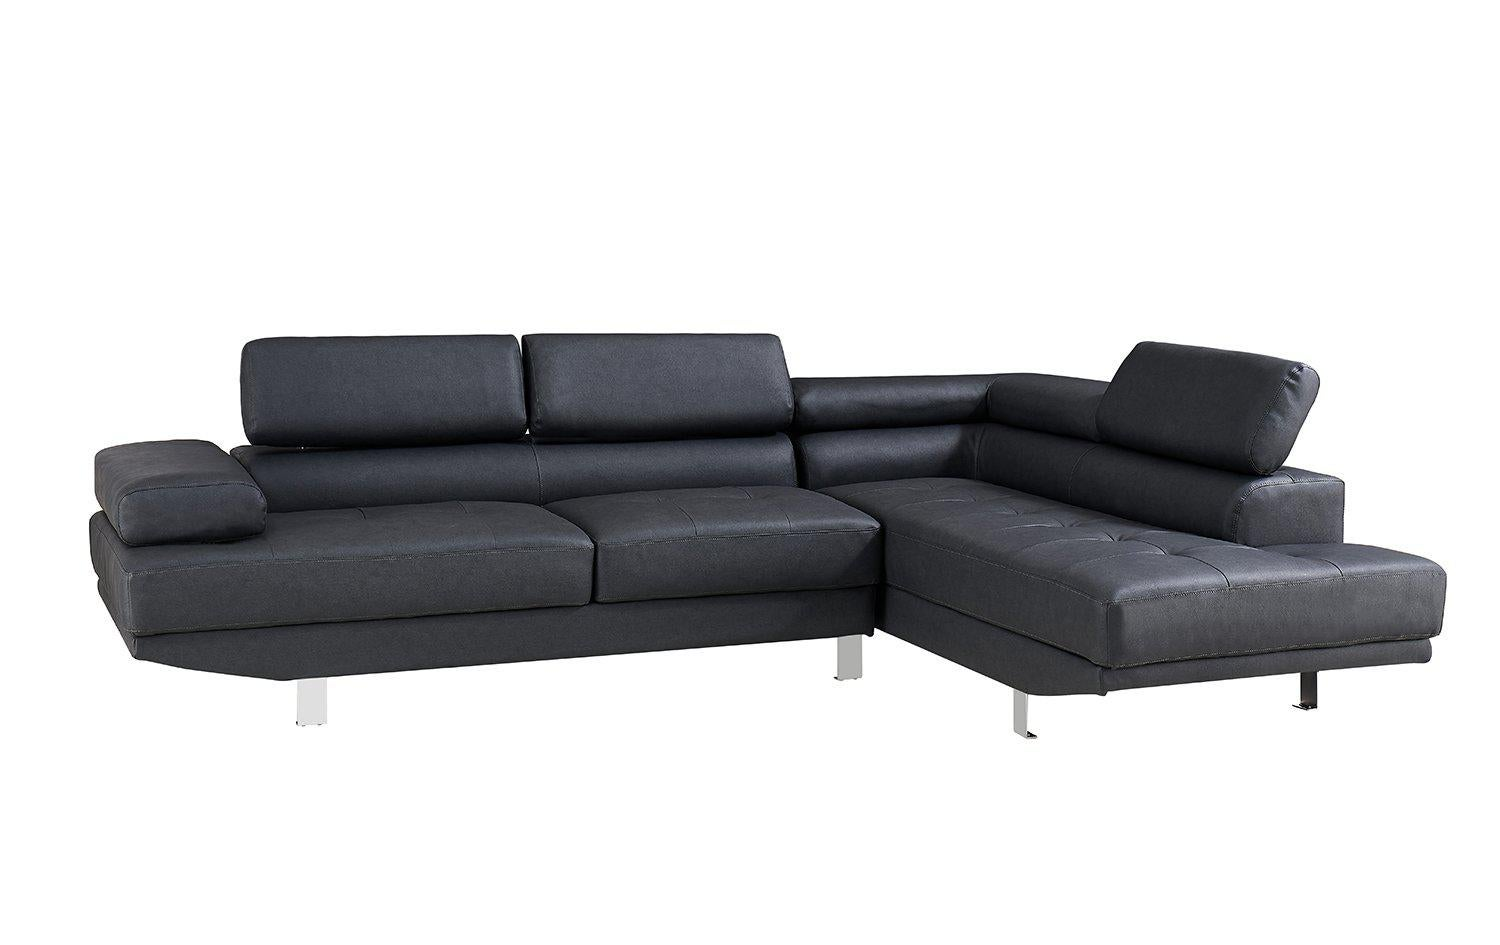 right corner 2 8m modern black fabric sectional sofa chaise lounge suite couch furniture